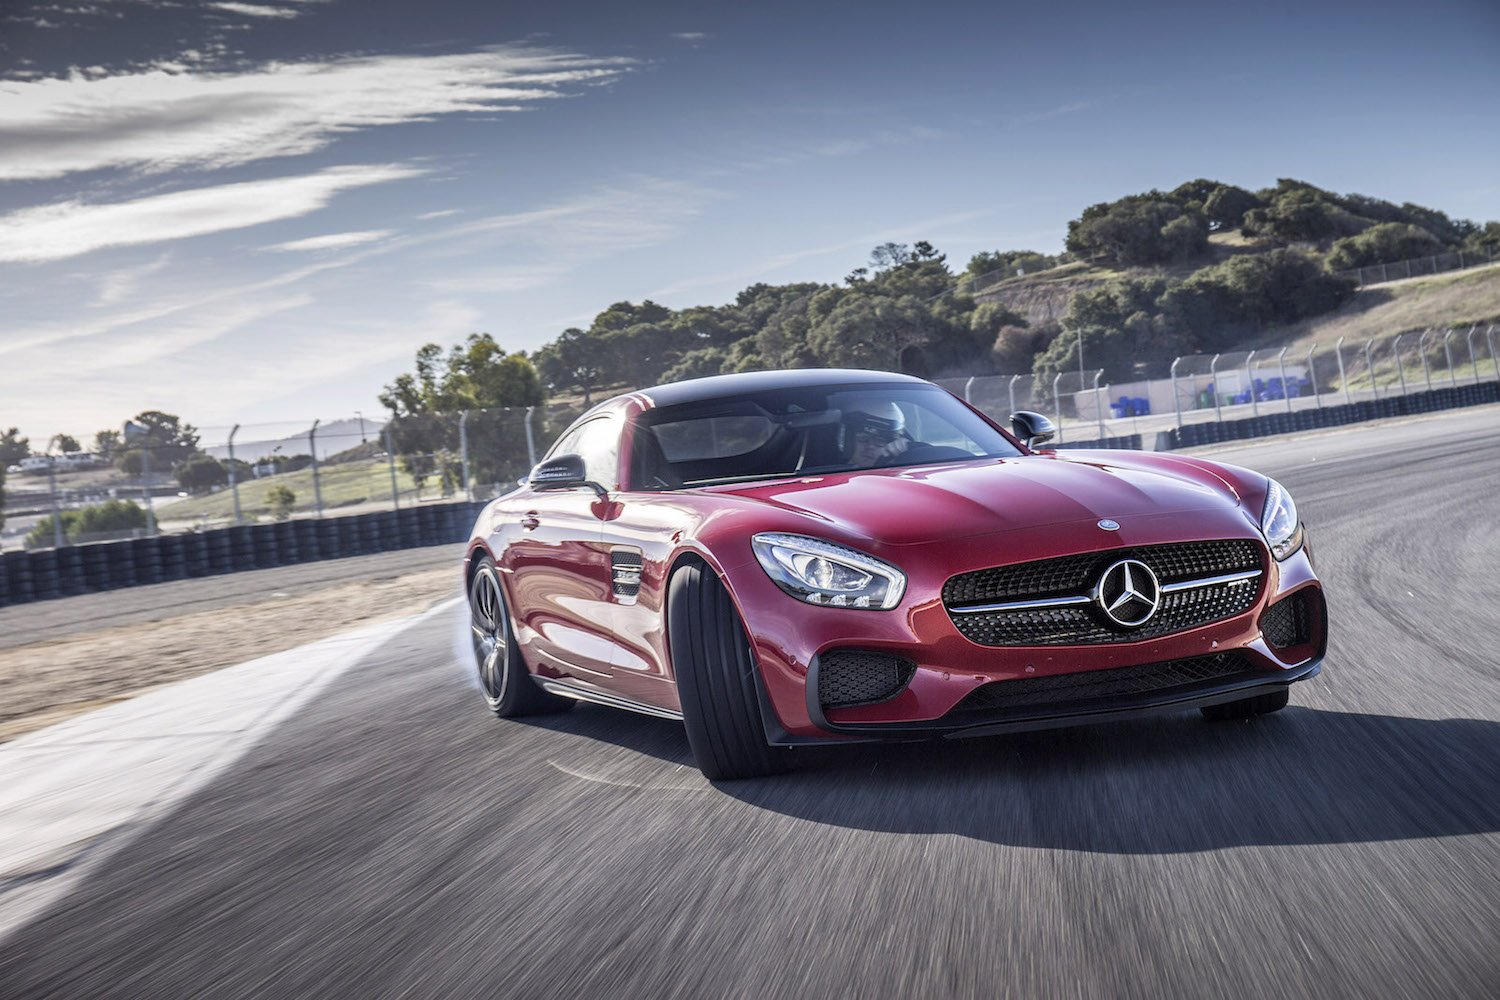 Mercedes will assign its amg gt sports car to track duty for Mercedes benz sports cars